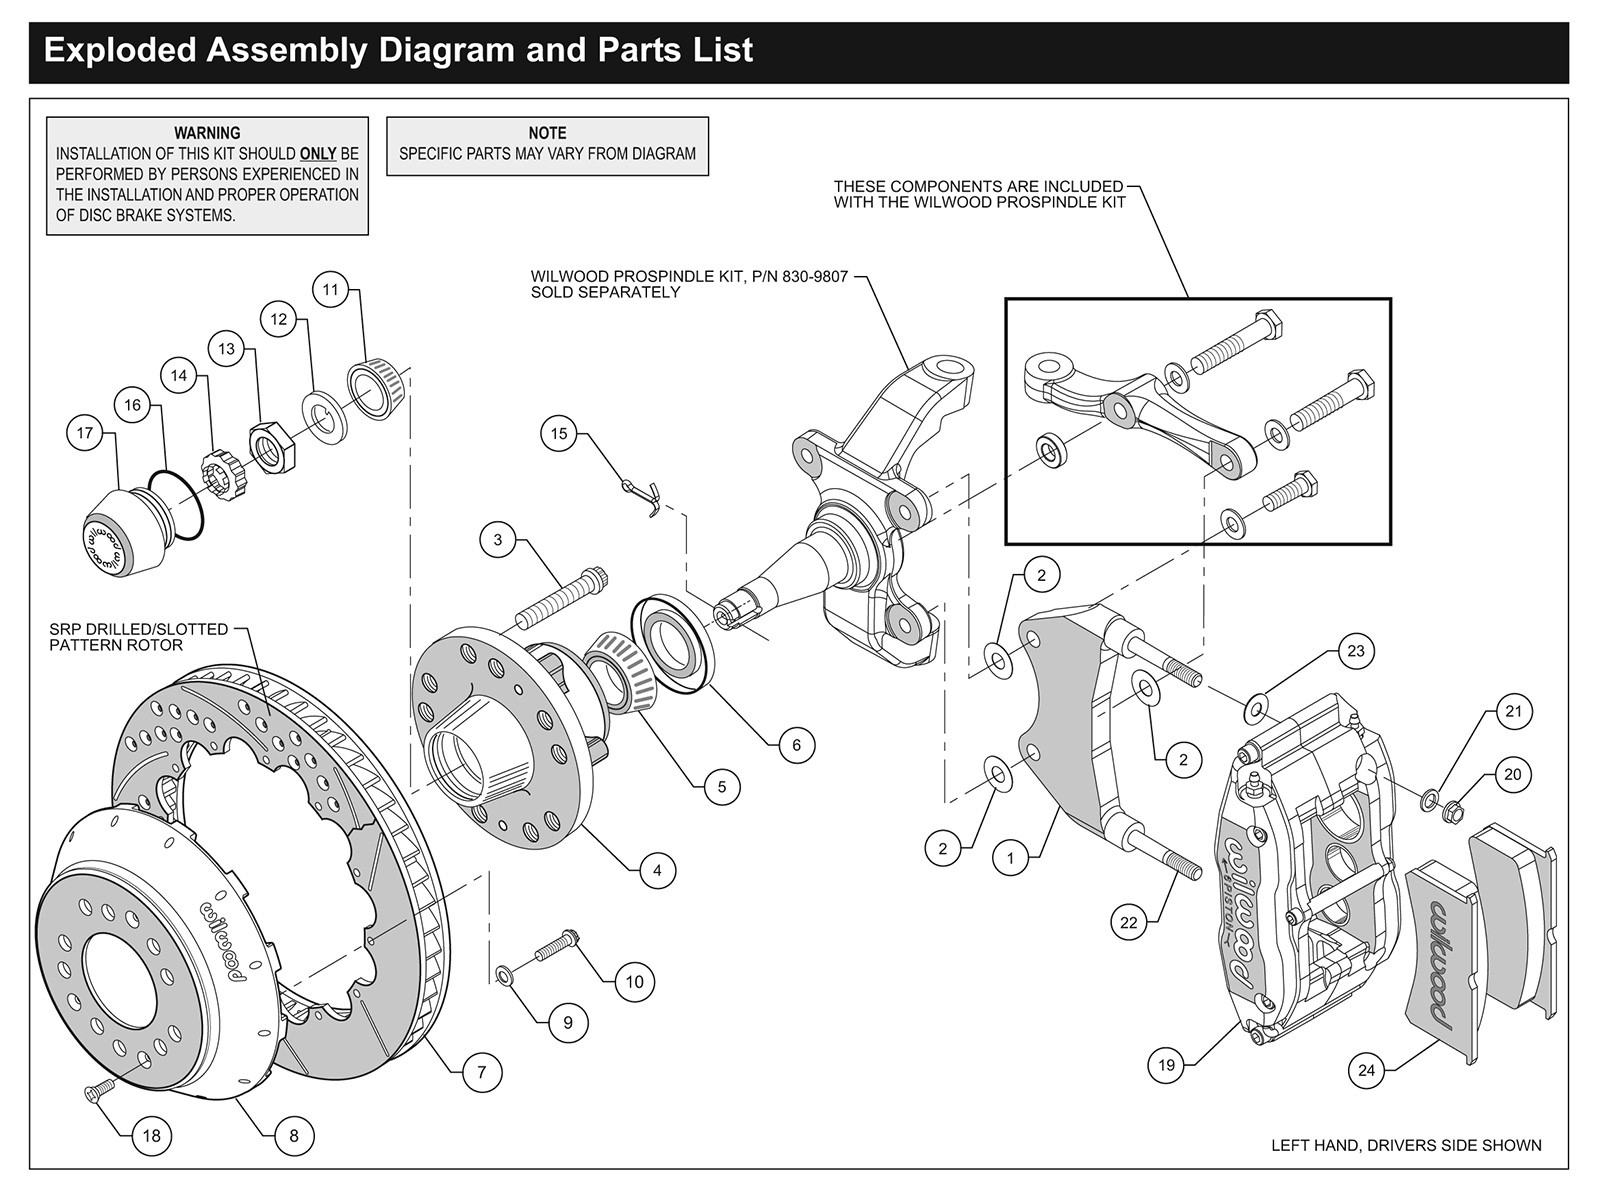 Disc Brake assembly Diagram How to Install Wilwood Disc Brakes Hot Rod Network Of Disc Brake assembly Diagram